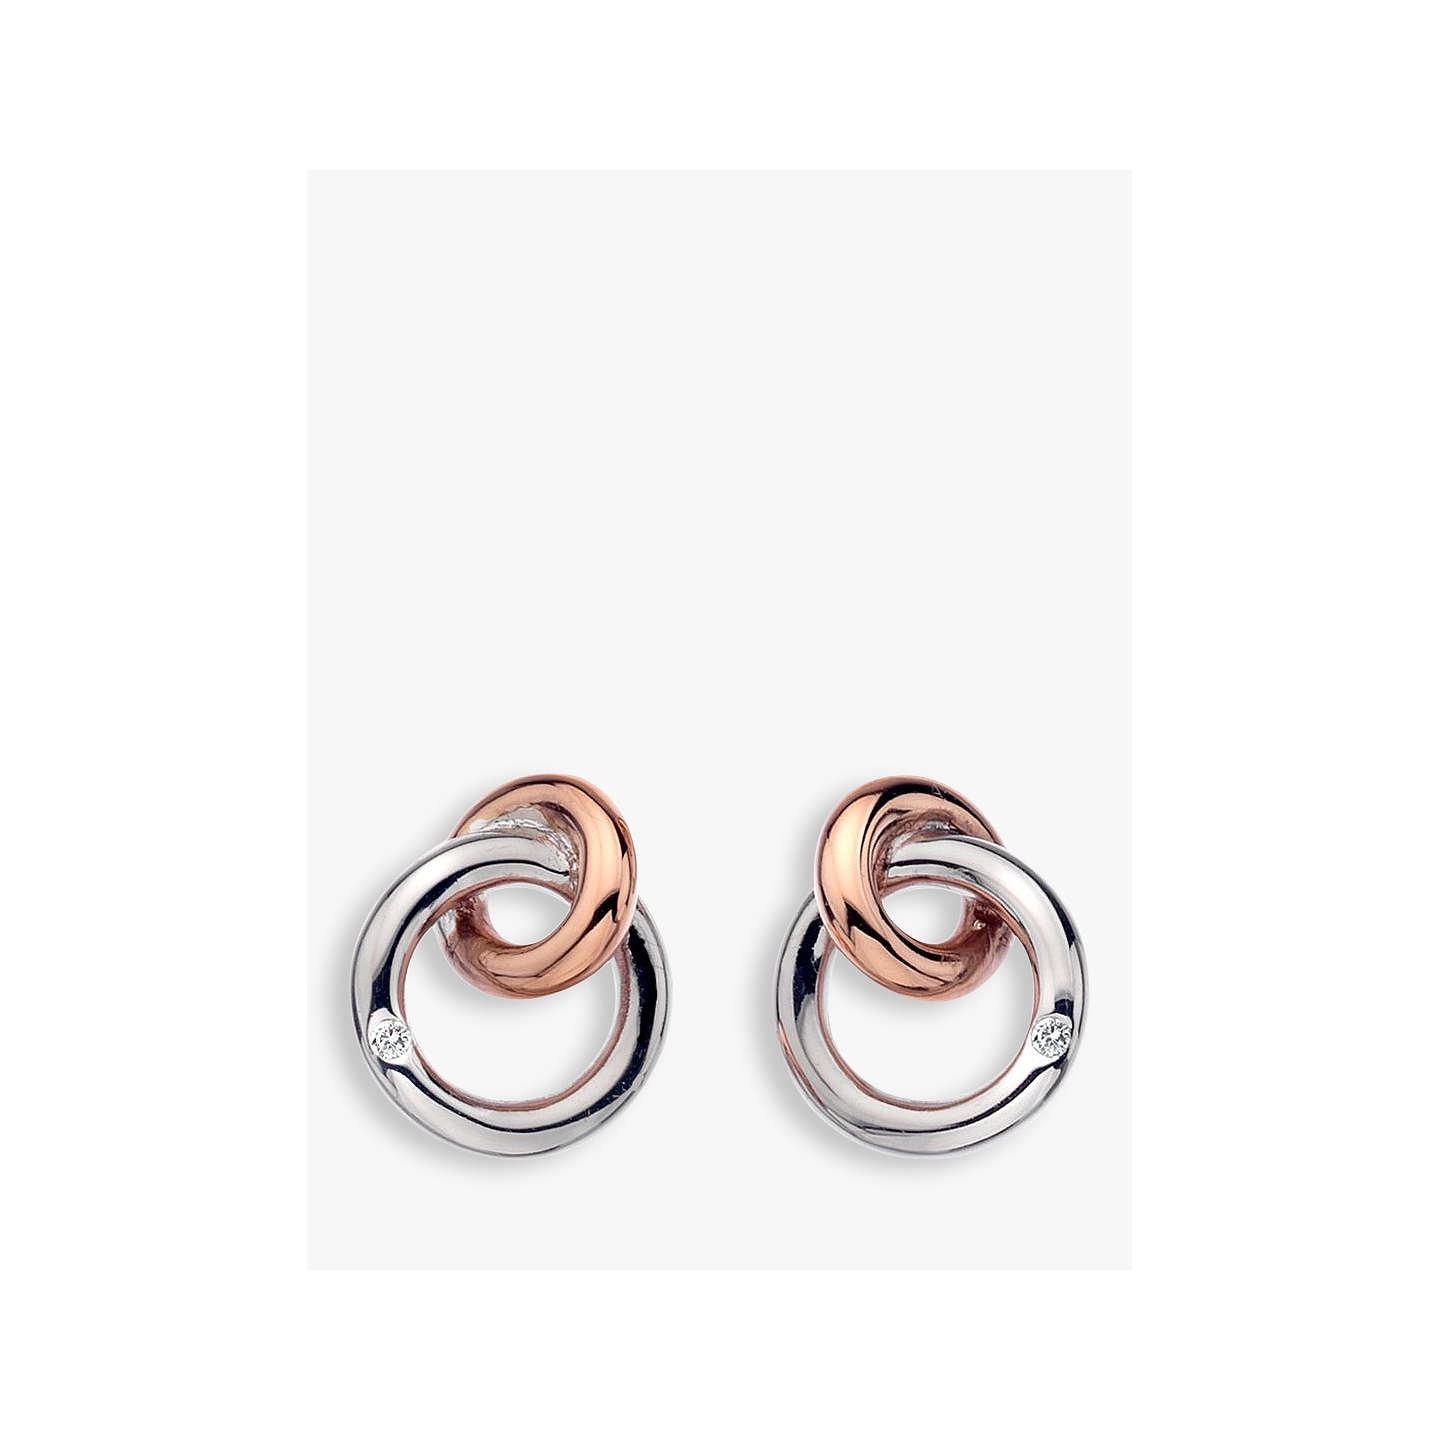 Hot Diamonds Eternity Interlock Stud Earrings Silver Rose Gold Online At Johnlewis